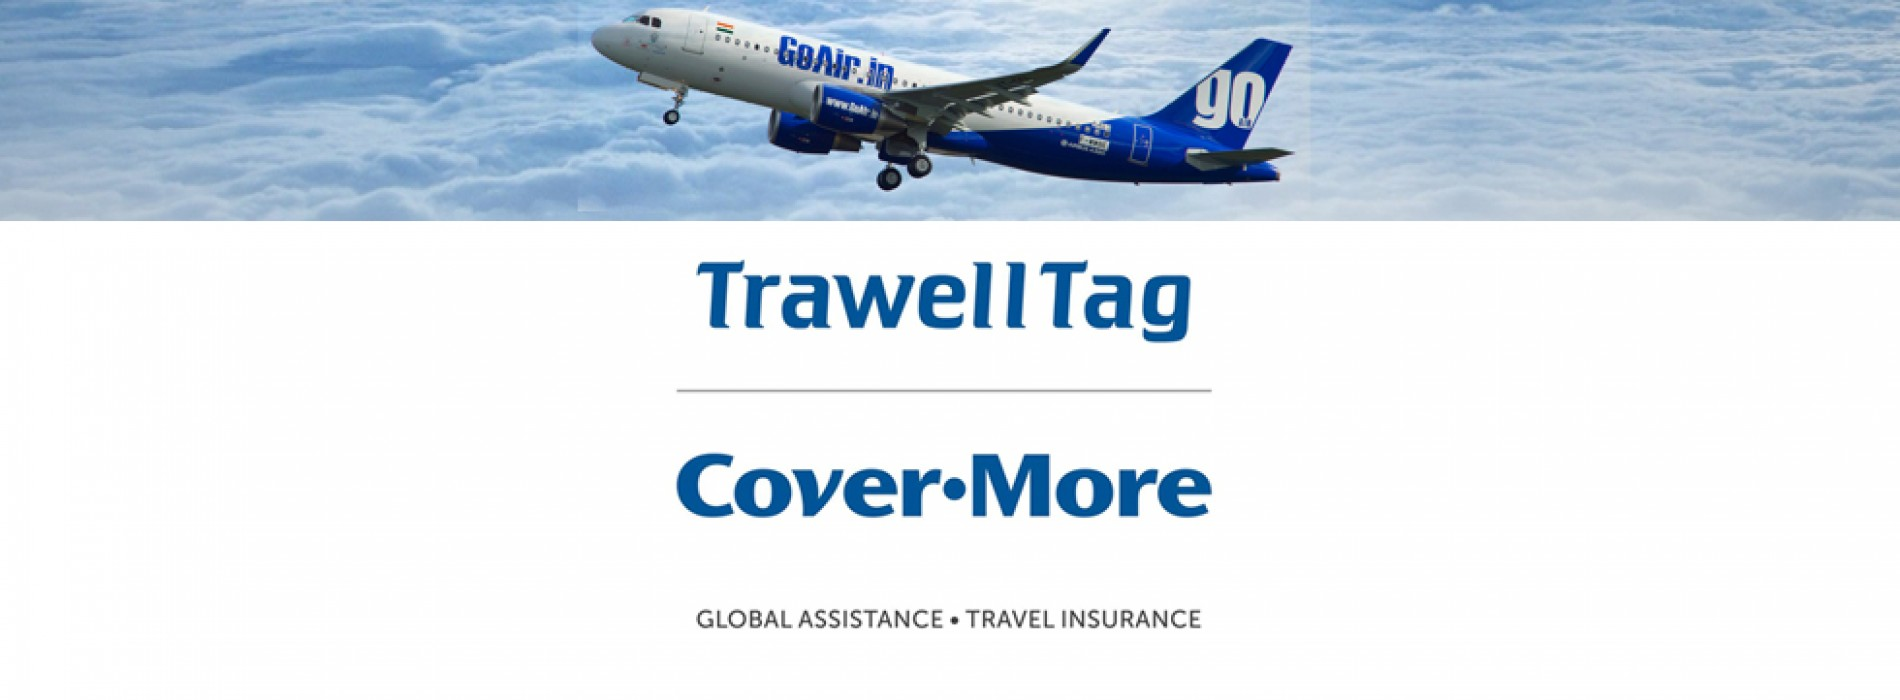 TrawellTag Cover-More and GoAir announce Travel Assistance and Insurance Partnership